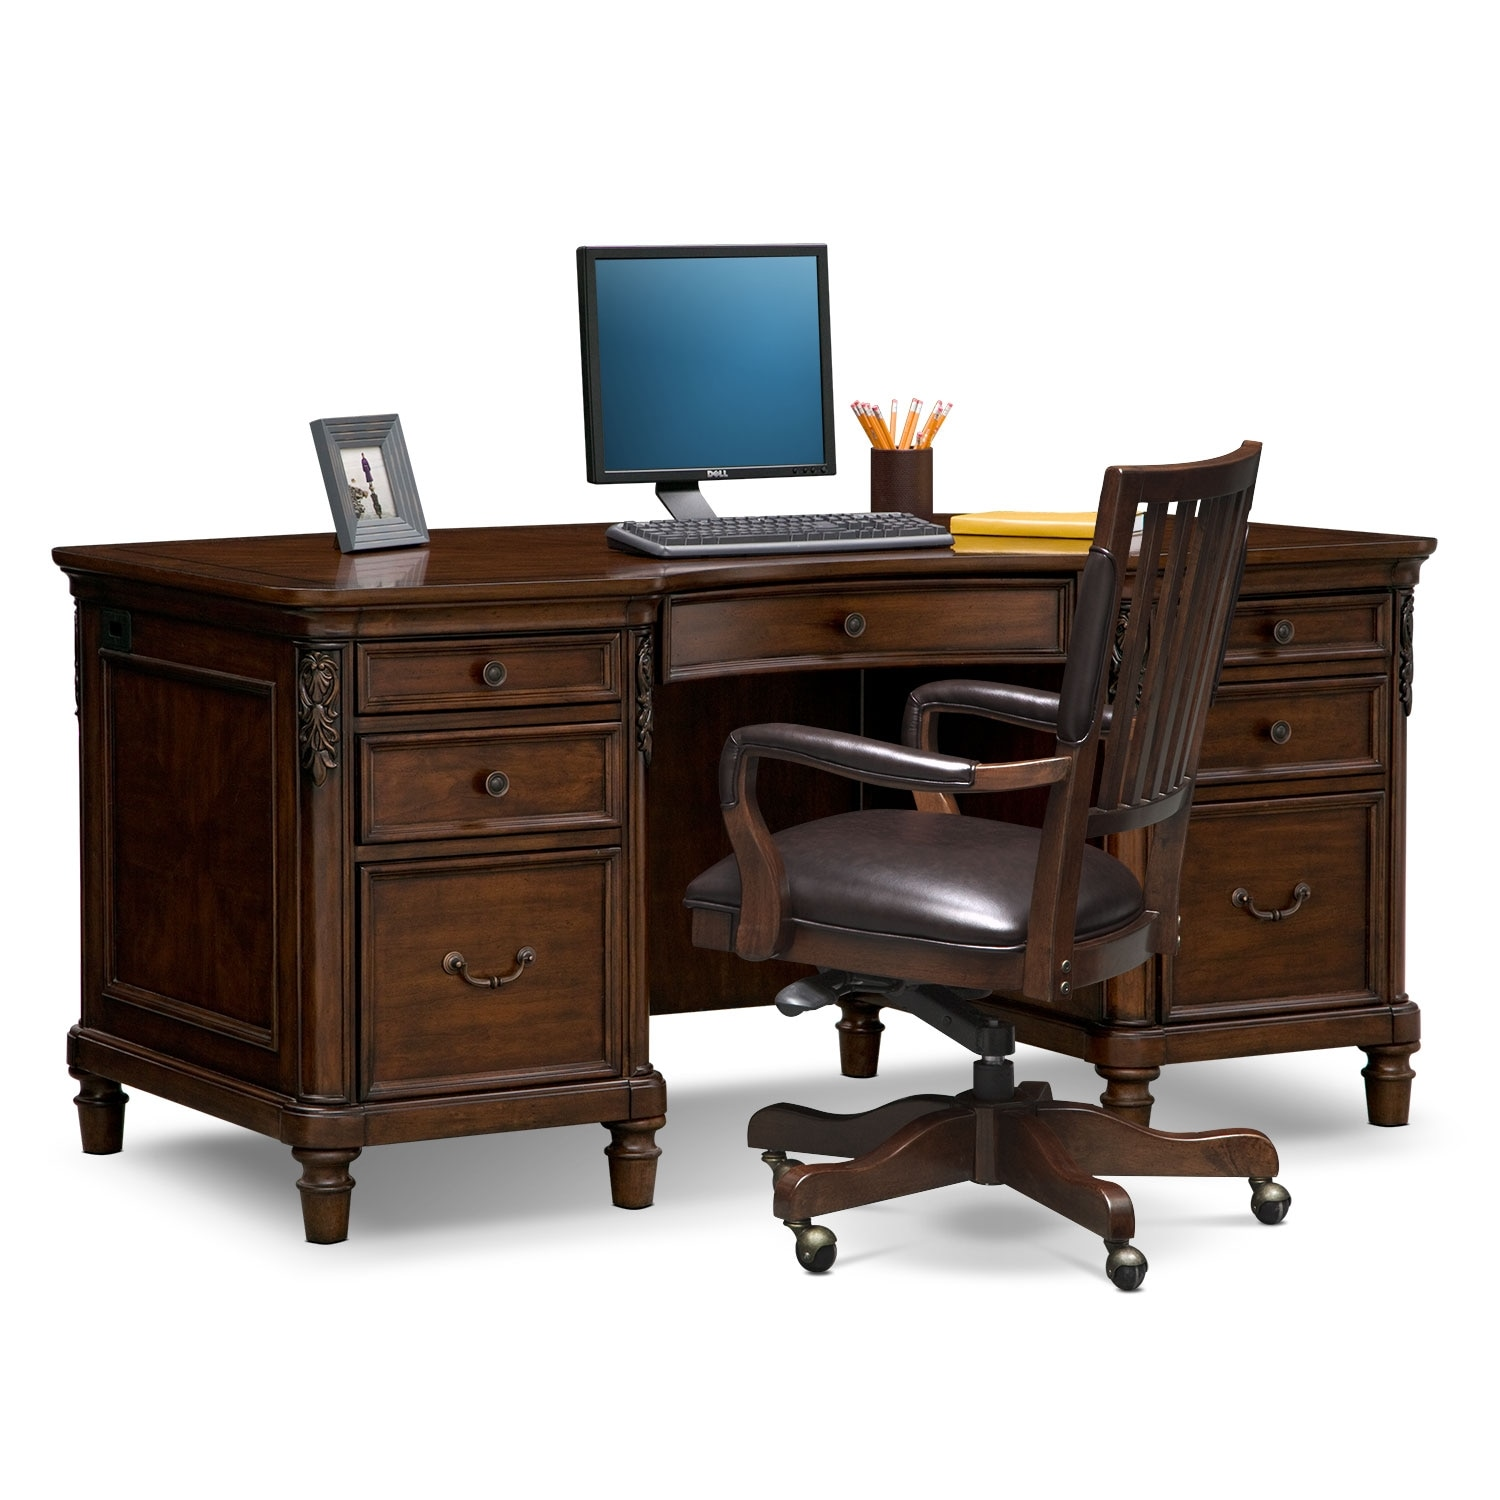 Executive Office Furniture: Ashland Executive Desk And Chair Set - Cherry